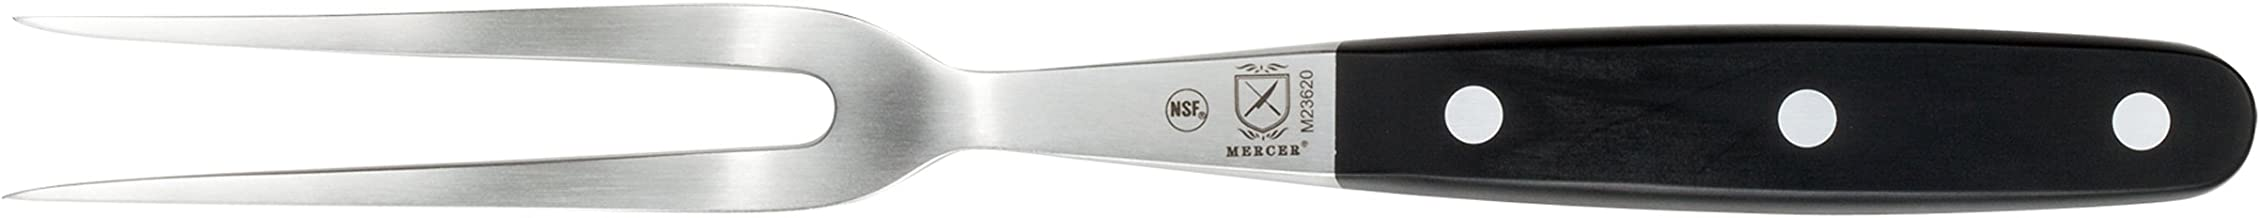 Mercer Culinary Renaissance 6-Inch Forged Carving Fork